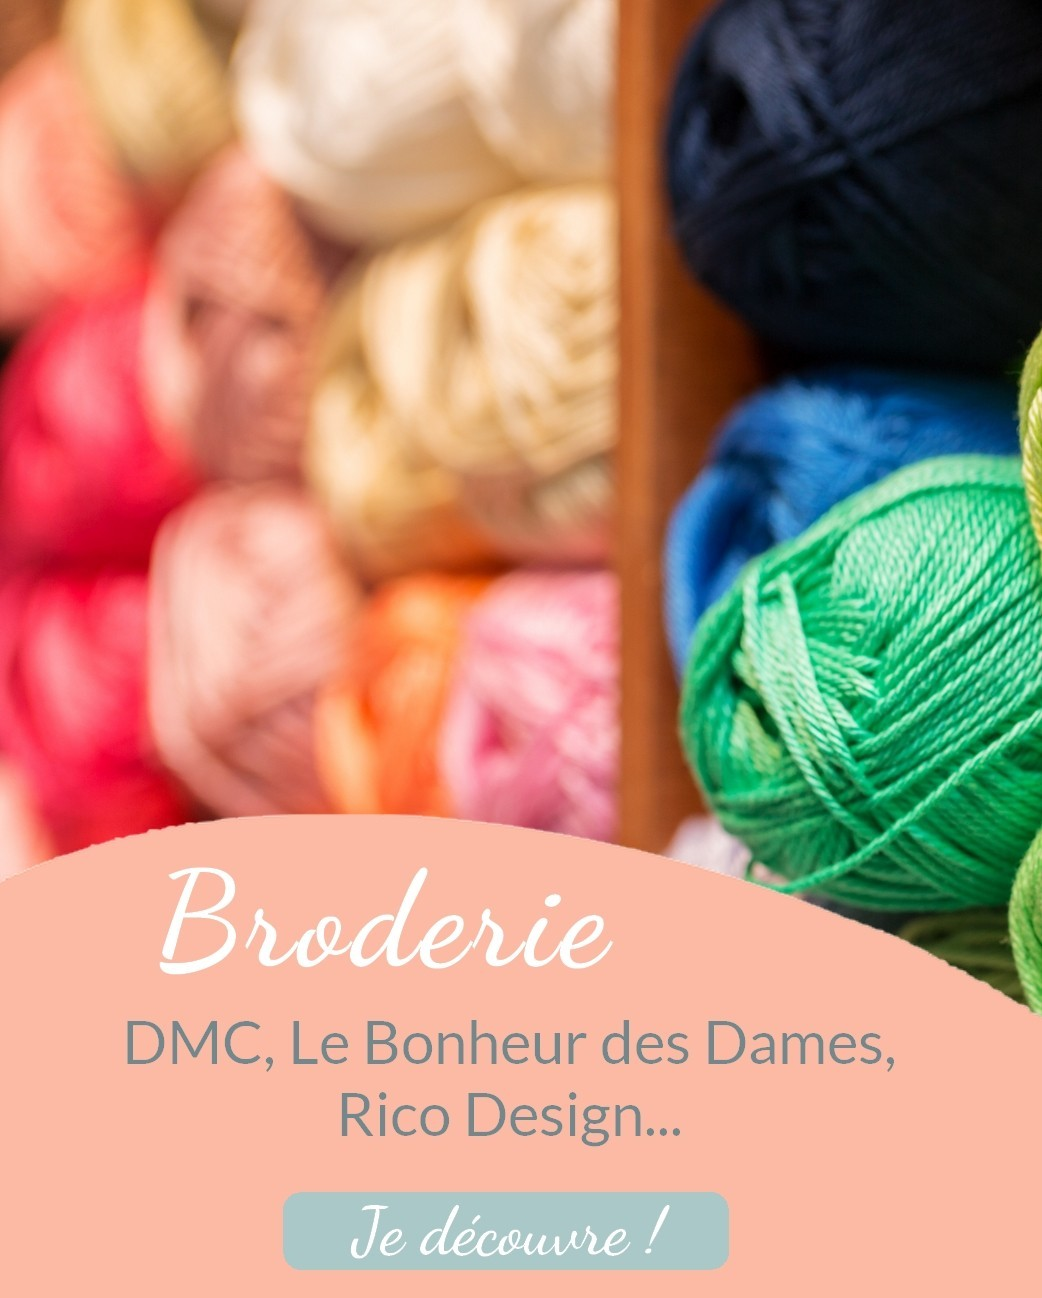 Broderie